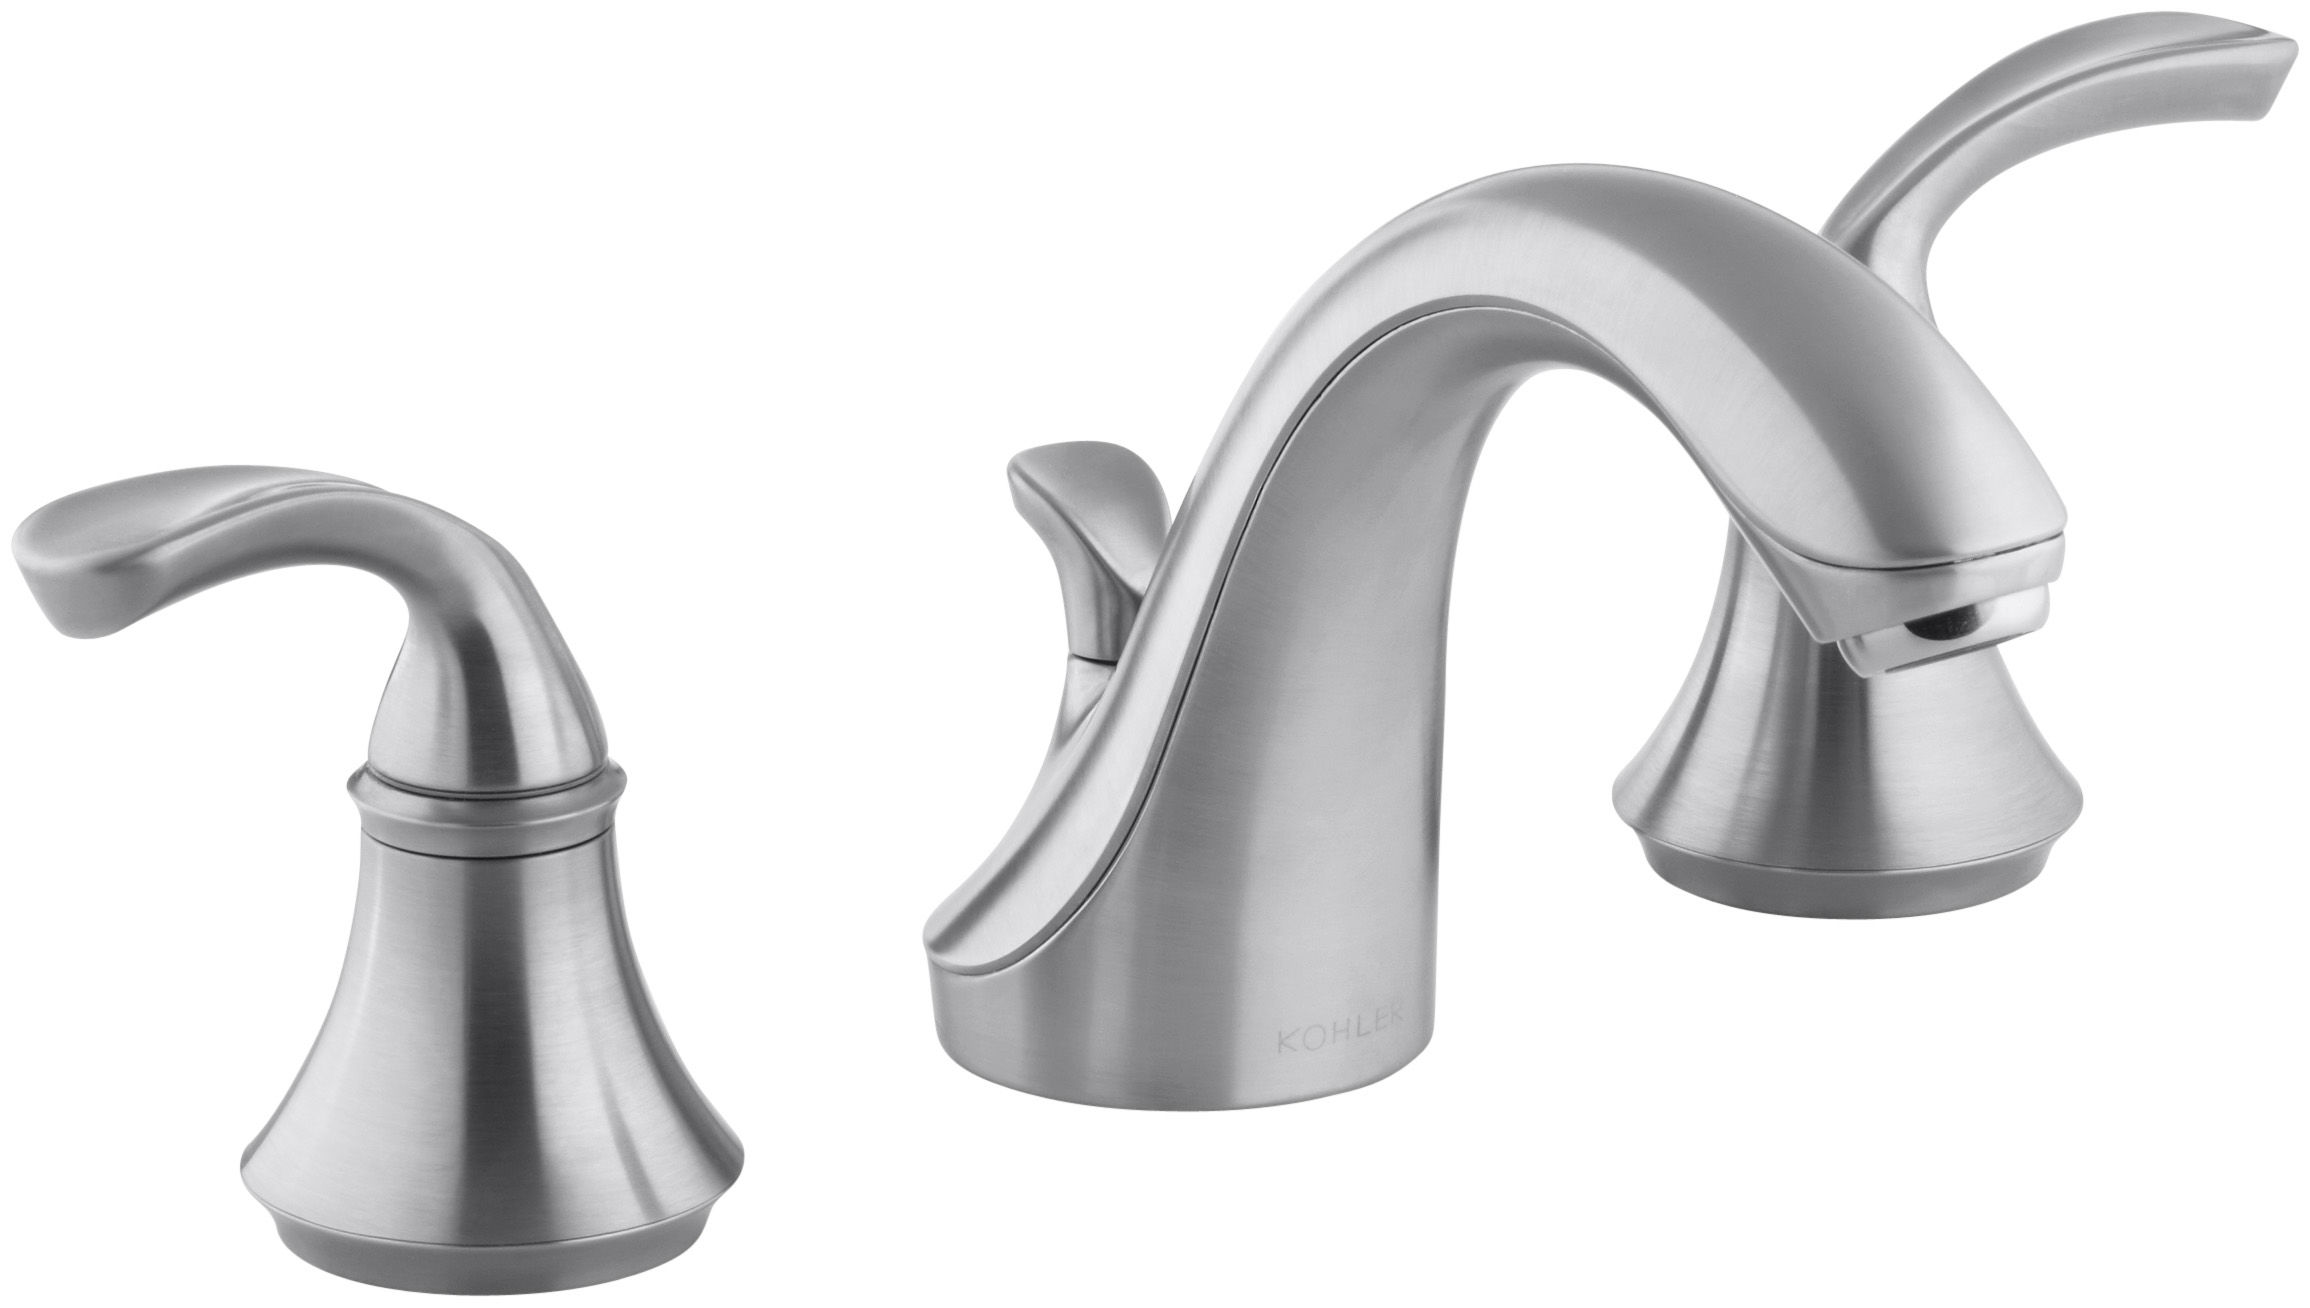 Kohler K-10272-4-G Brushed Chrome Forte Widespread Bathroom Faucet ...